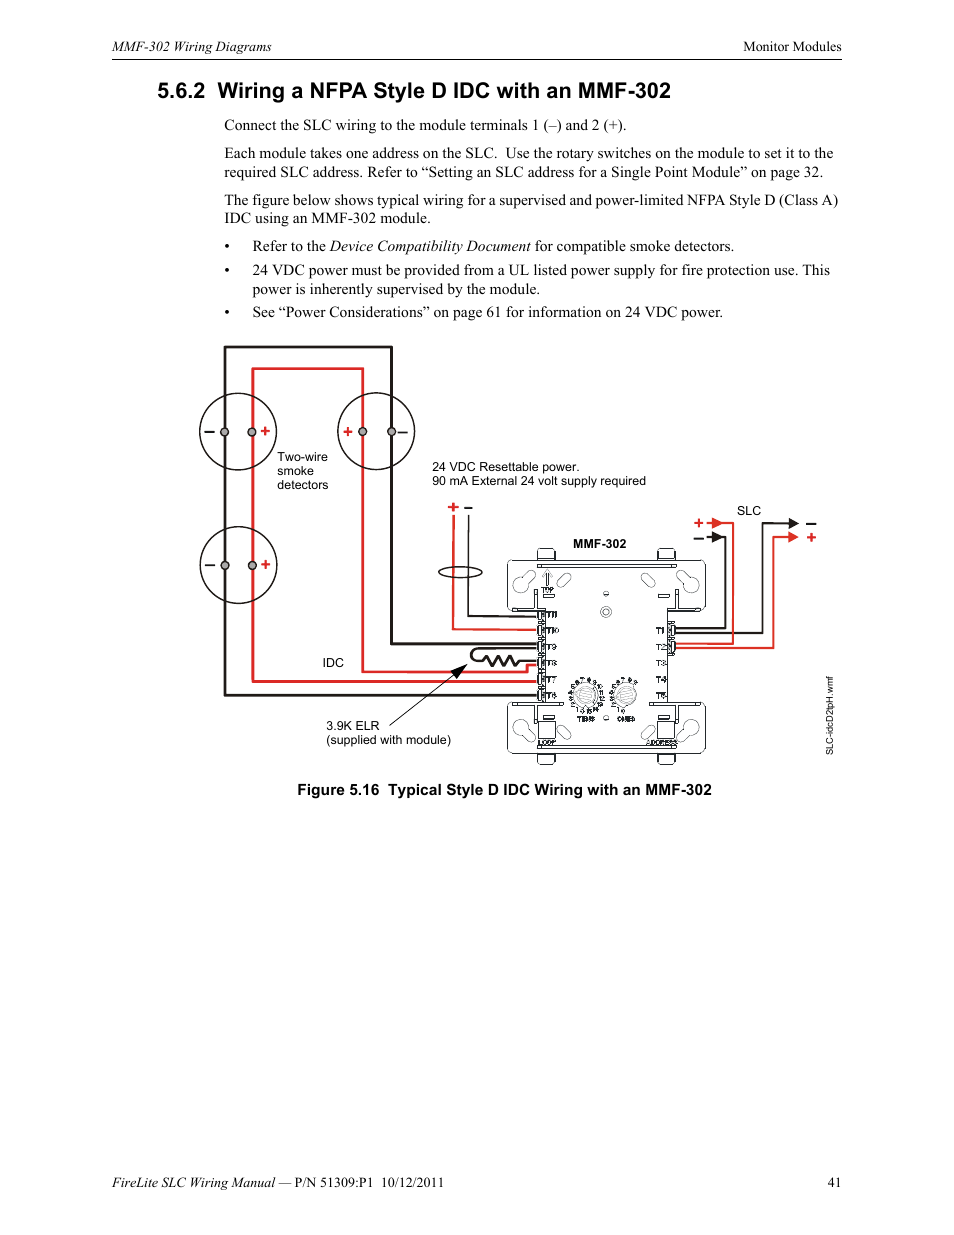 2 wiring a nfpa style d idc with an mmf-302, Wiring a nfpa style d on